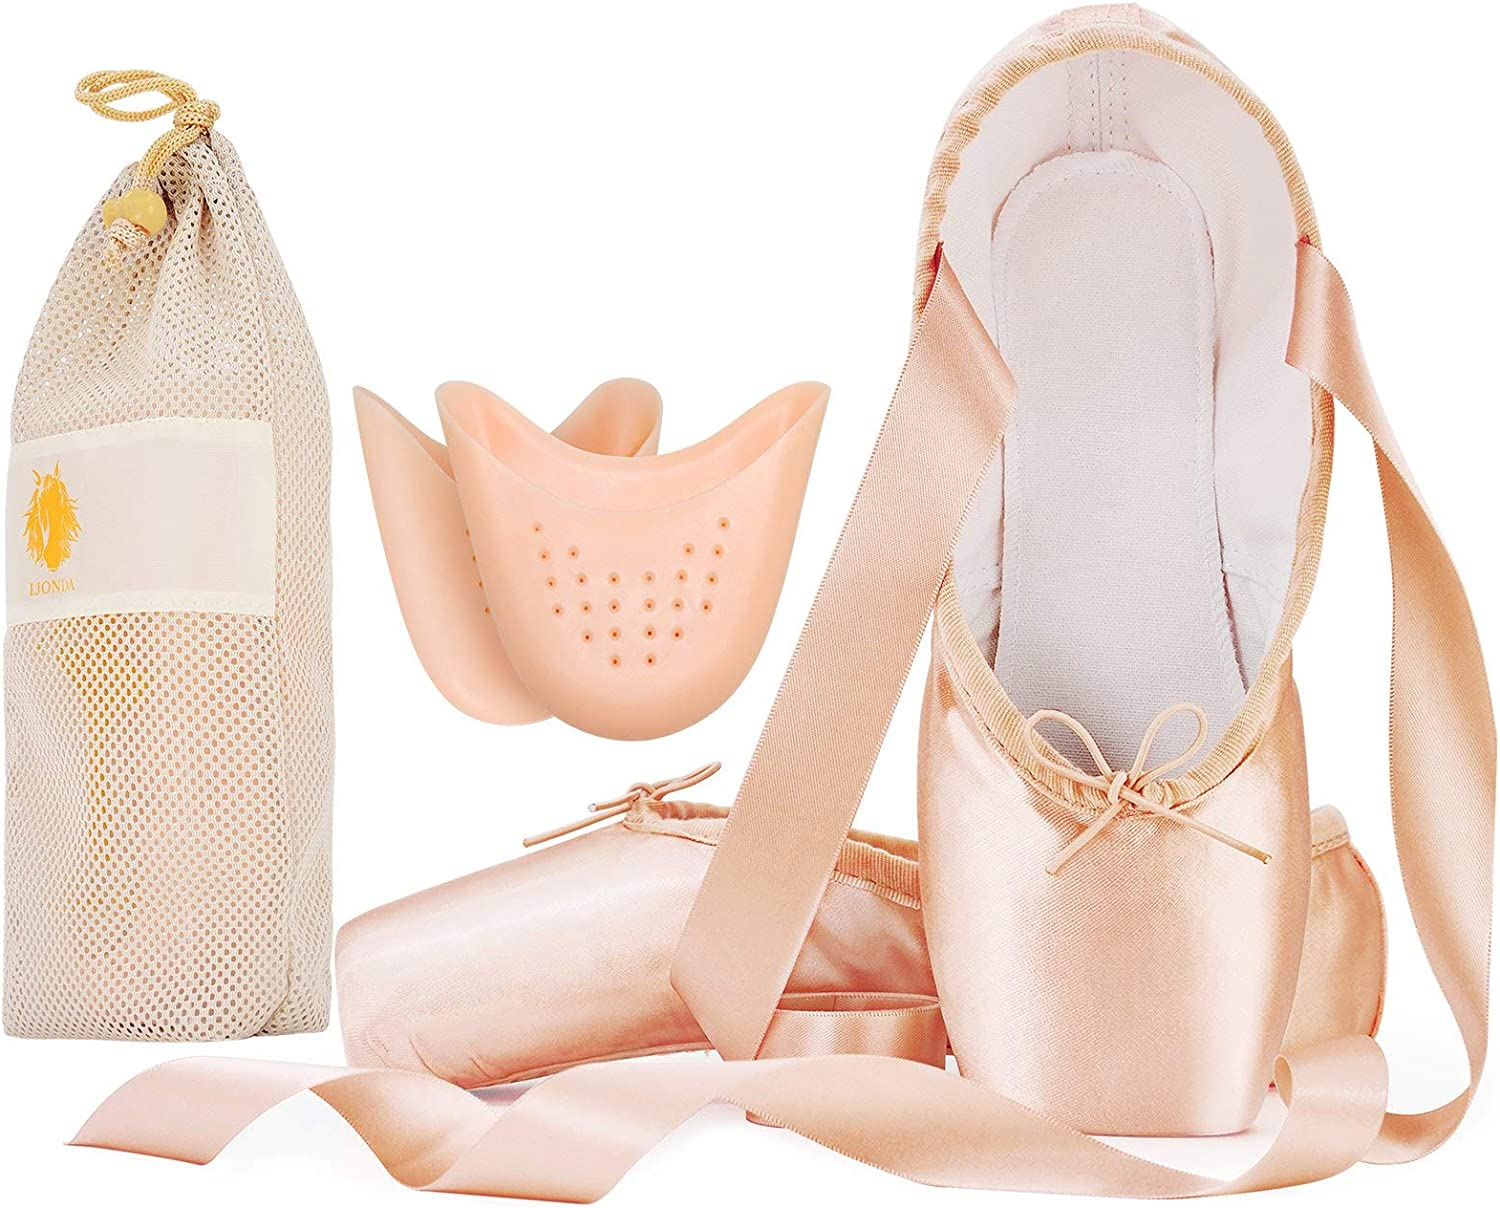 IJONDA Adult Ballet Pointe Shoes for Girls Women with Toe Pads and Mesh Bag